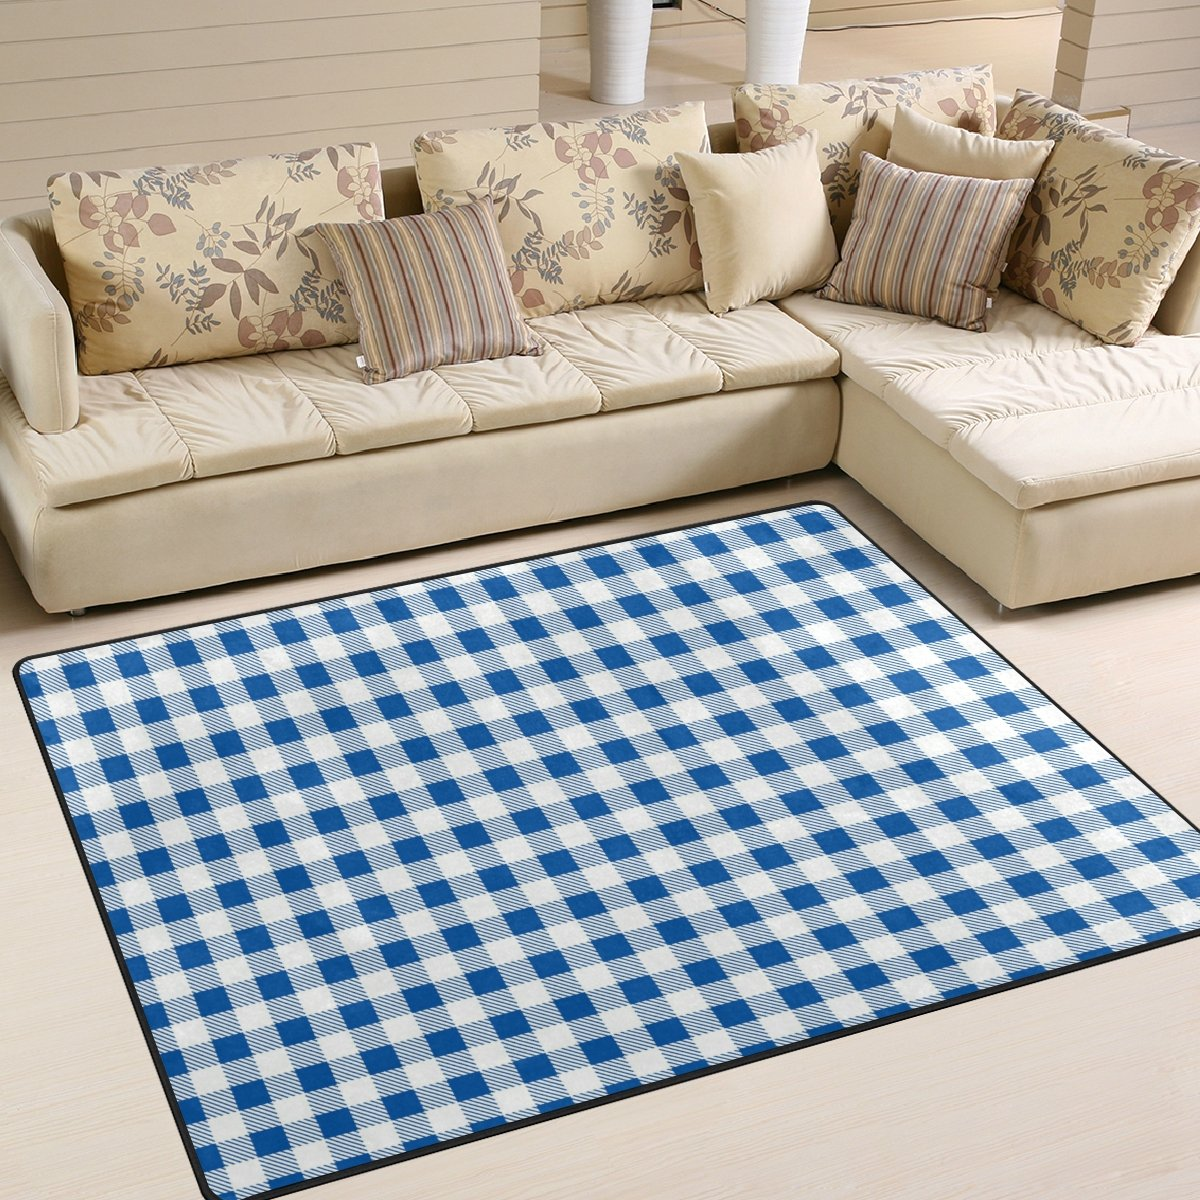 YZGO Firebrick Gingham Plaid White Blue Grid Kids Area Rug,Classic Checkered Non-Slip Floor Mat Soft Resting Area Doormats for Living Dining Bedroom 5' x 7'